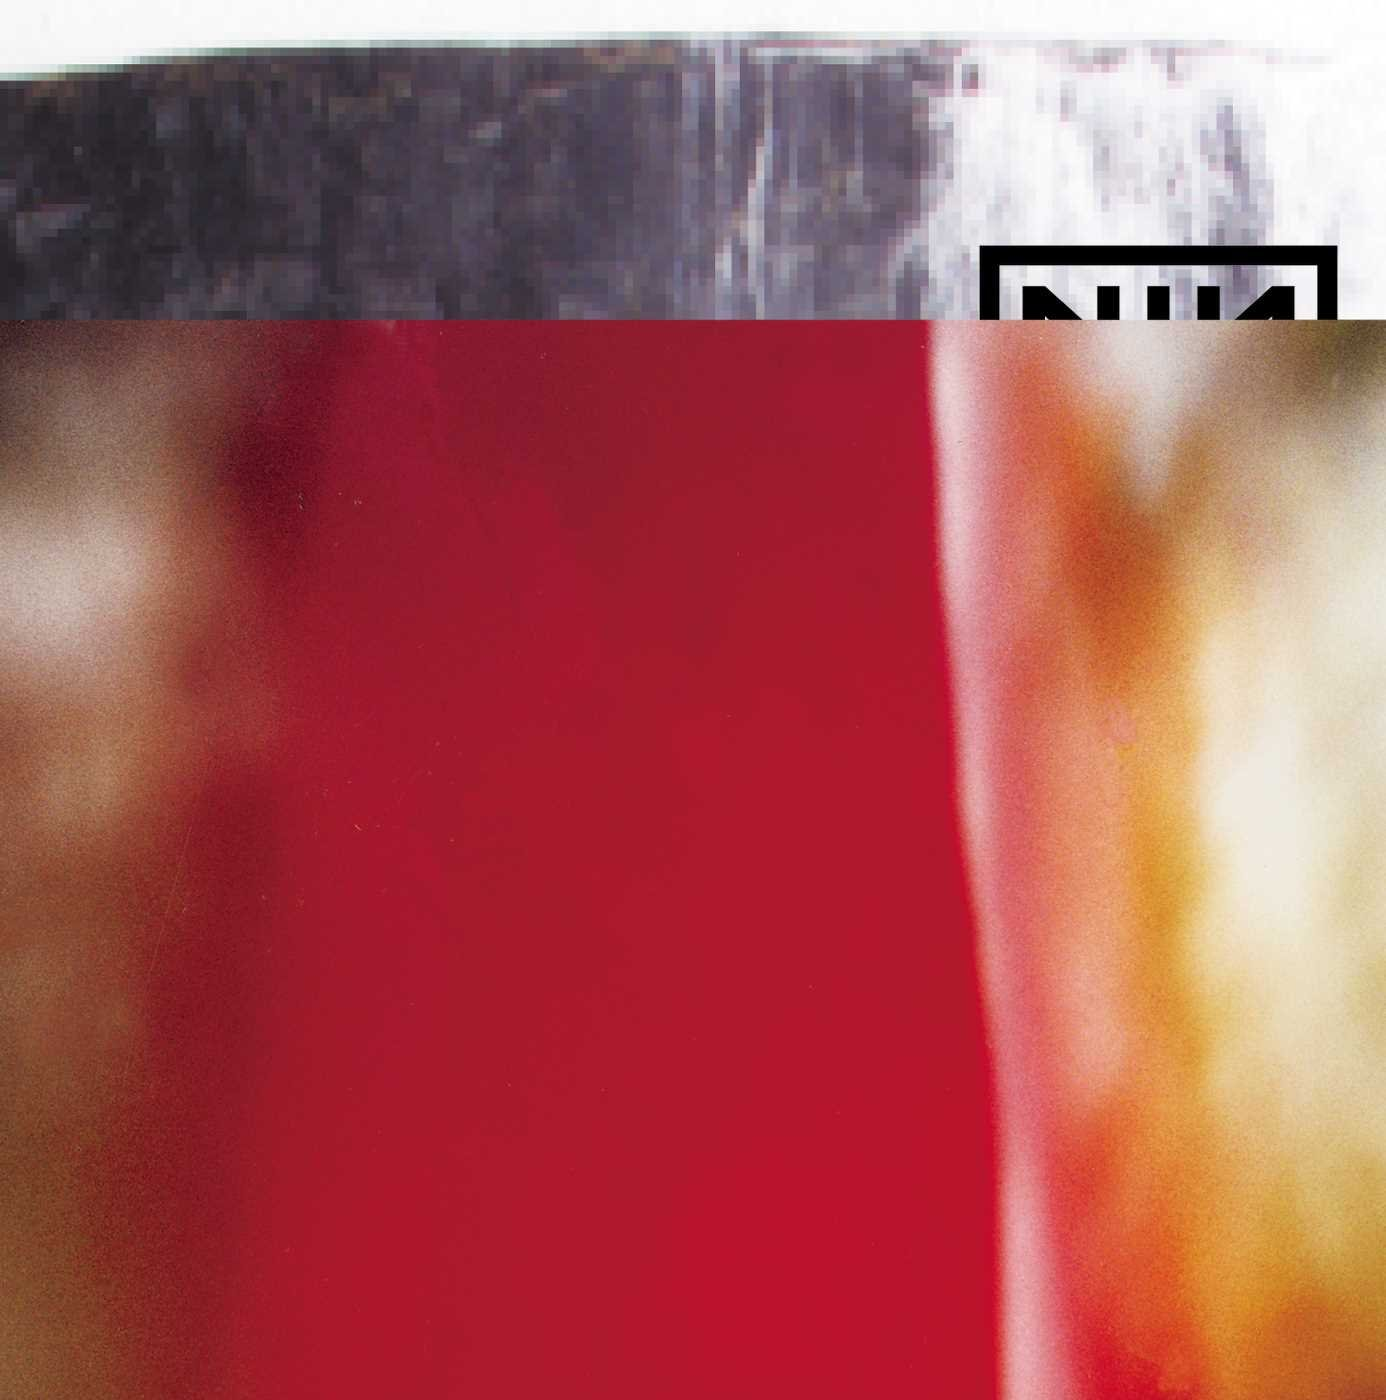 Nine Inch Nails - The Fragile - Amazon.com Music